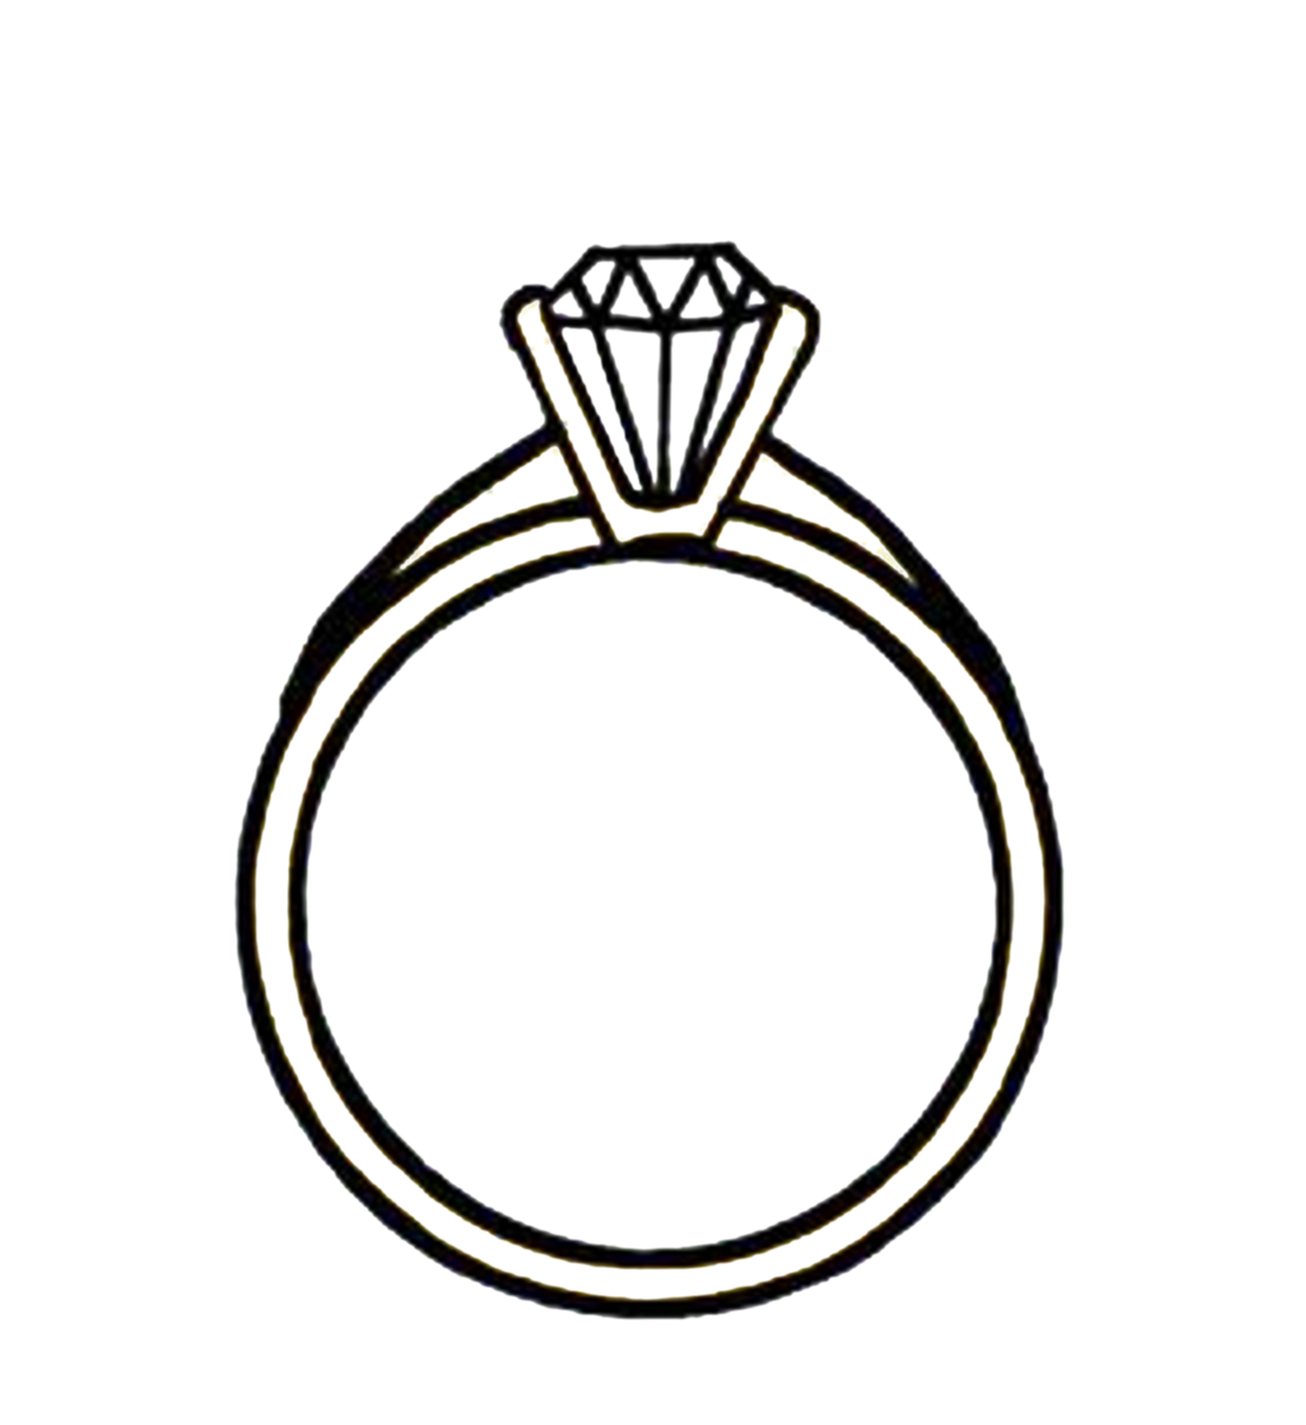 Engagement Ring Clipart Black .-Engagement Ring Clipart Black .-10